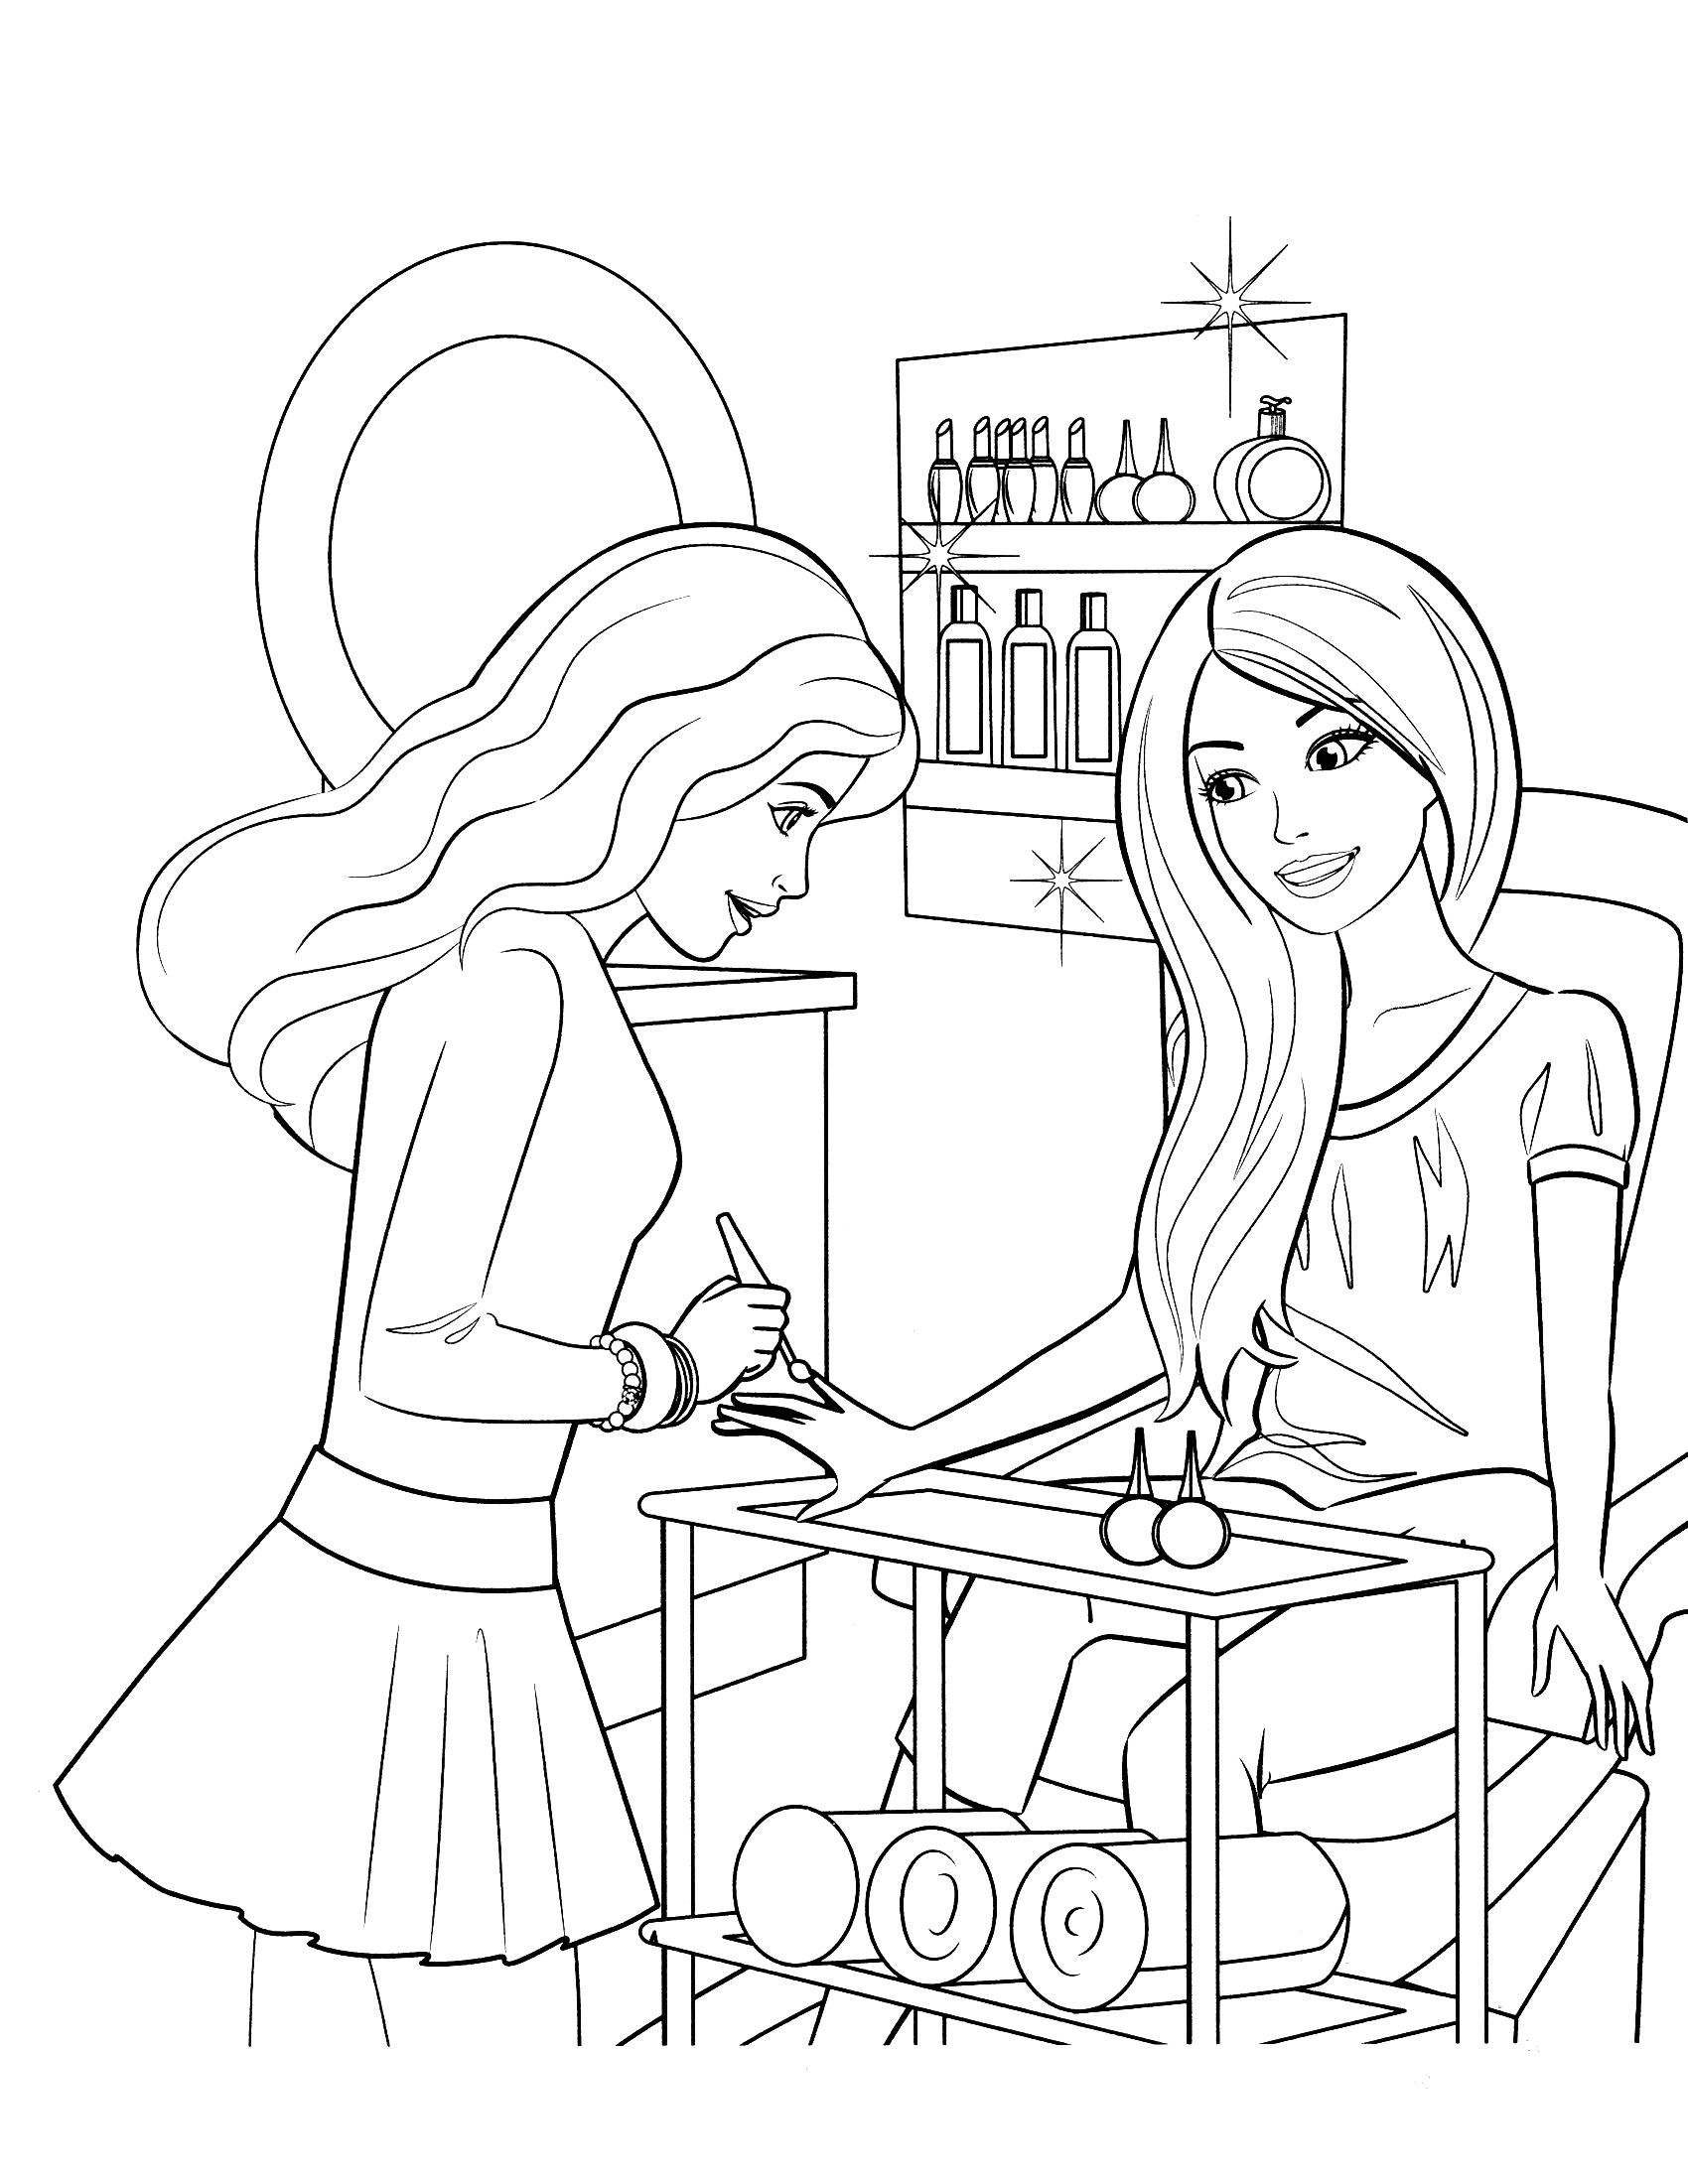 Princess house coloring pages - Free Printable Barbie Coloring Pages For Kids Barbie Drawing Pictures For Kids Colouring